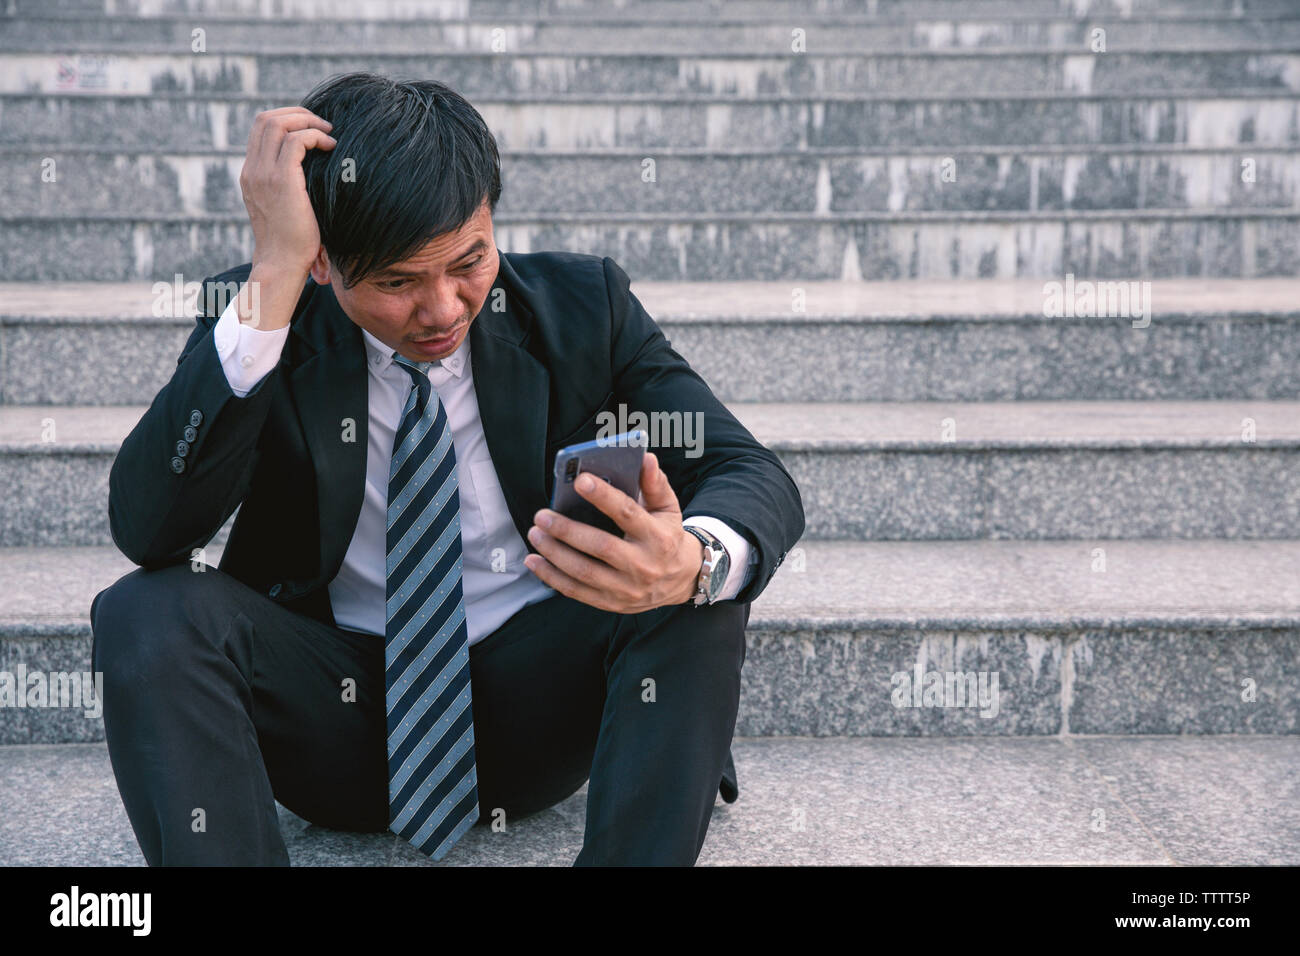 Asian businessmen with headaches or migraines at the city hall after work Images of young businessmen who are tired, stress, crisis, depression, failu - Stock Image